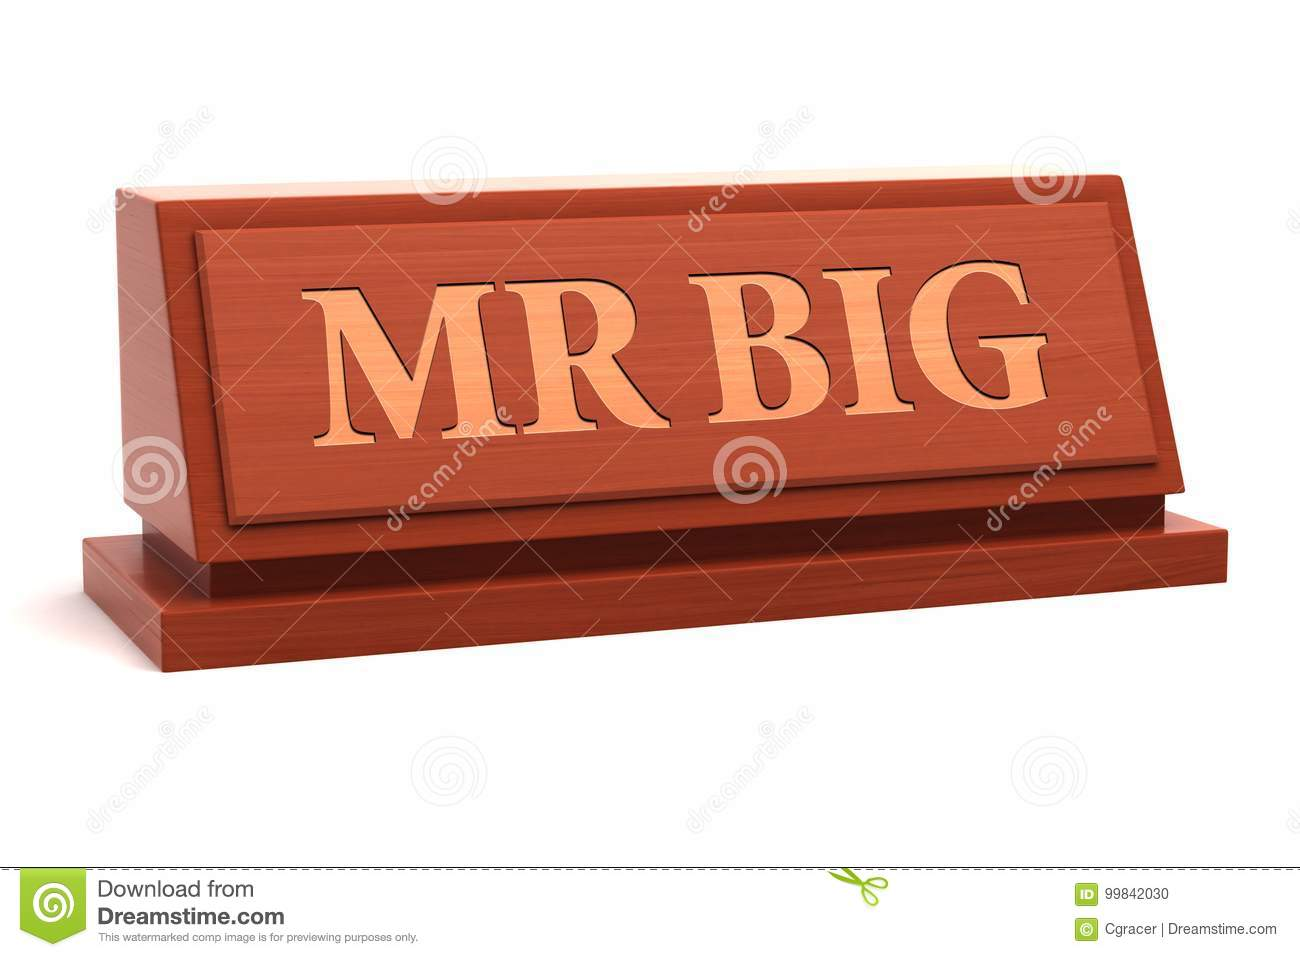 To be with you mr. Big download free ringtone for android.